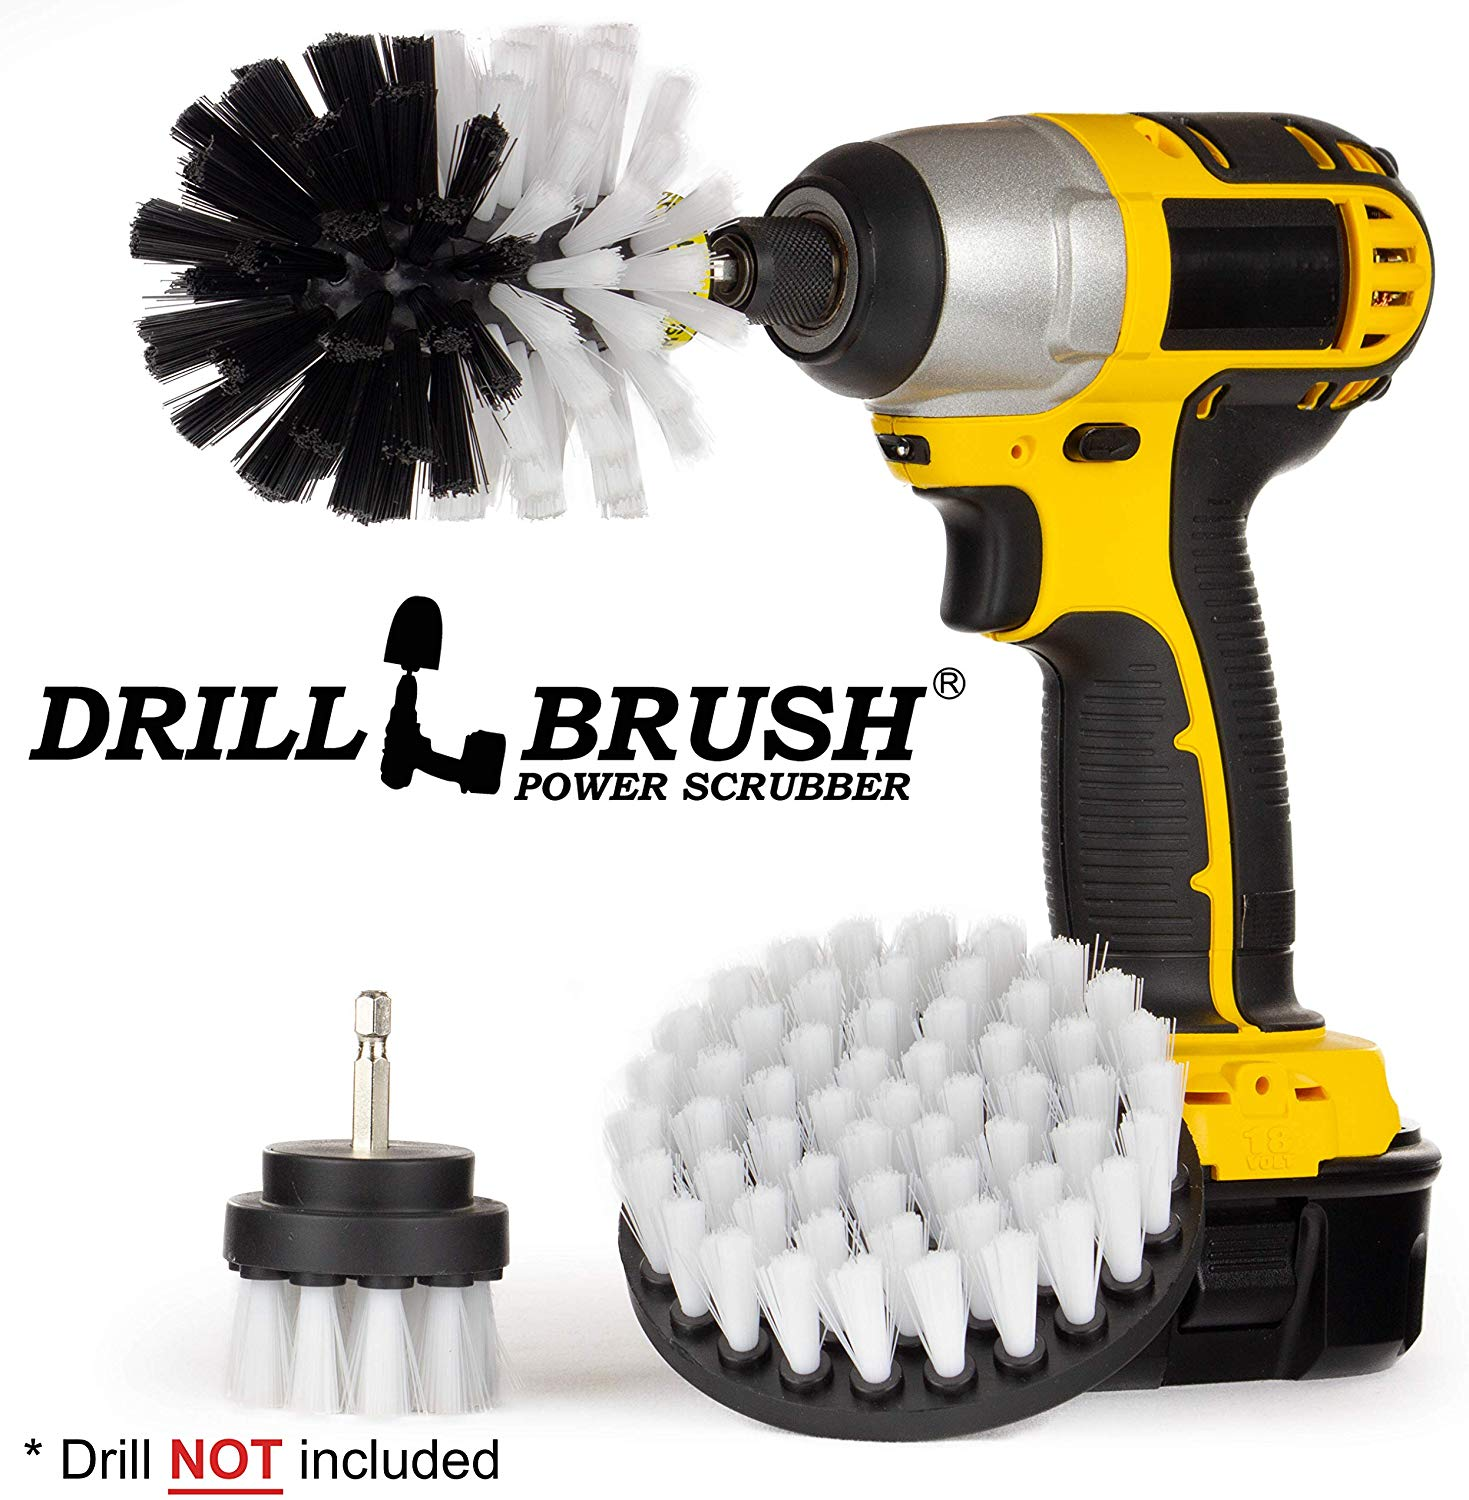 Drill brush 3 Piece Drill Brush Cleaning Tool Attachment Kit for Scrubbing